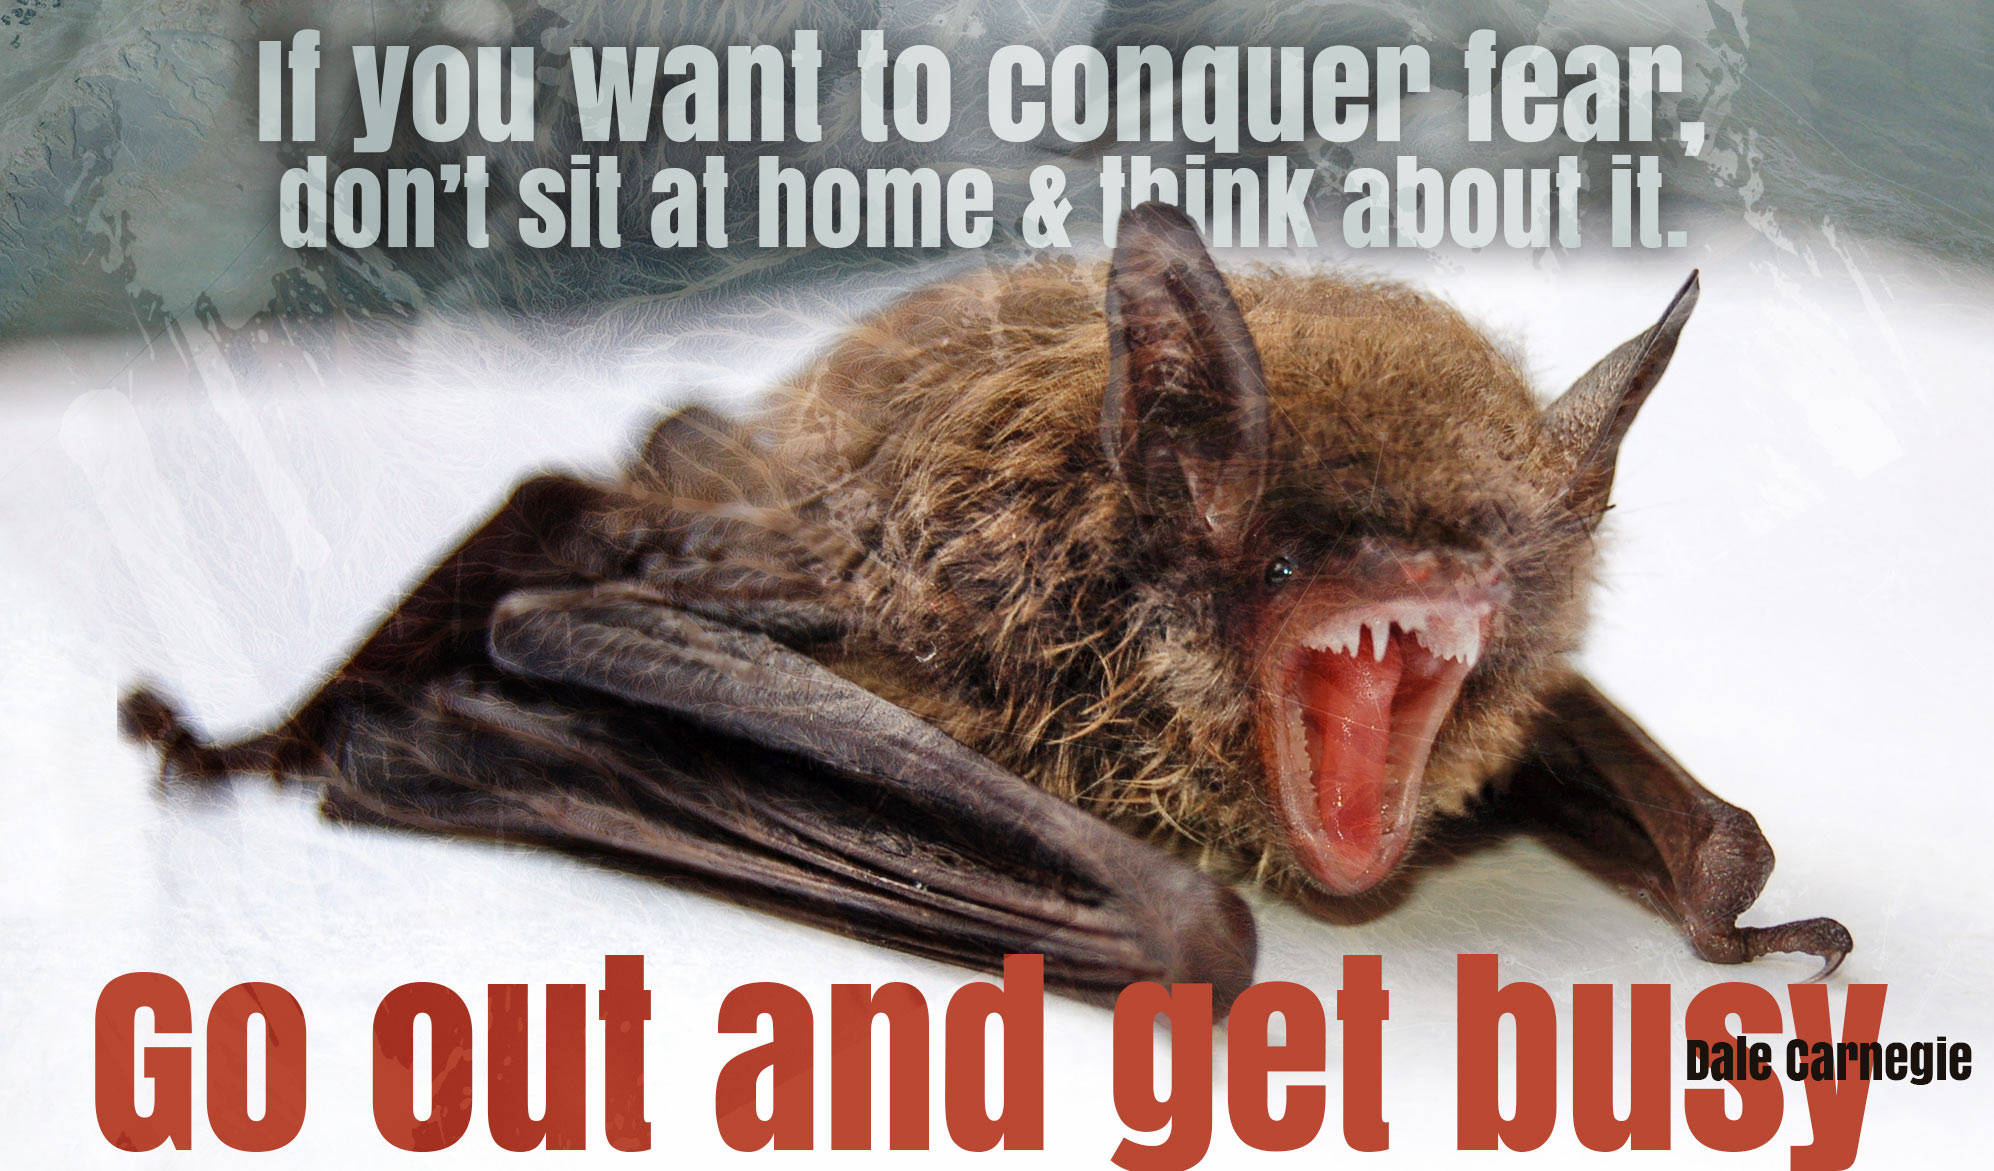 daily inspirational quote image: close up of a screeching bat